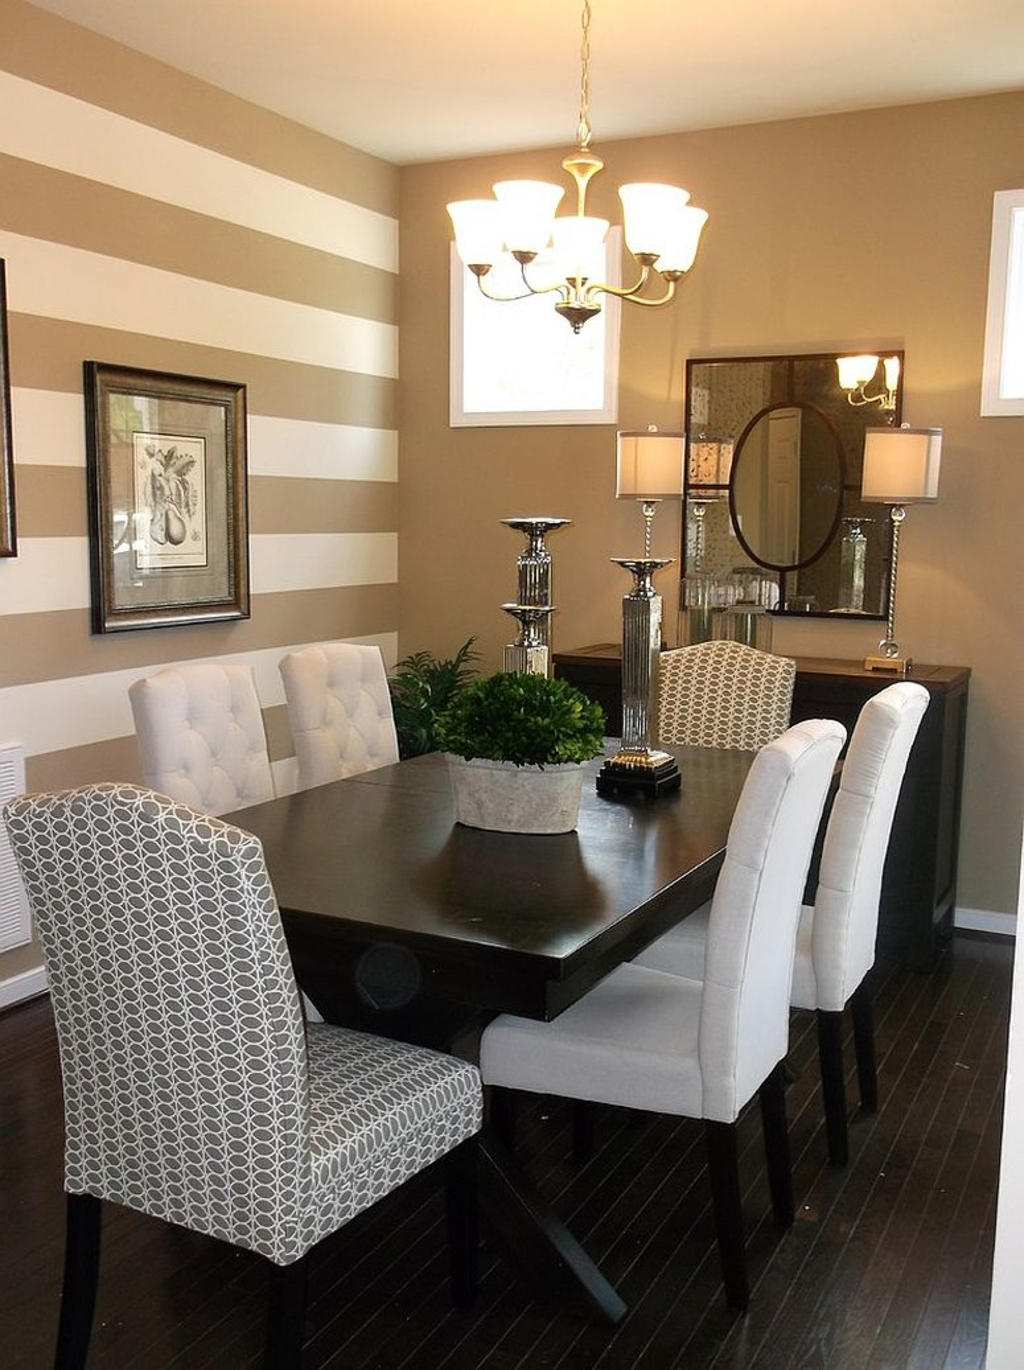 Traditional Dining Room Wall Decor Ideas – Utnavi Throughout Recent Dining Room Wall Accents (View 4 of 15)